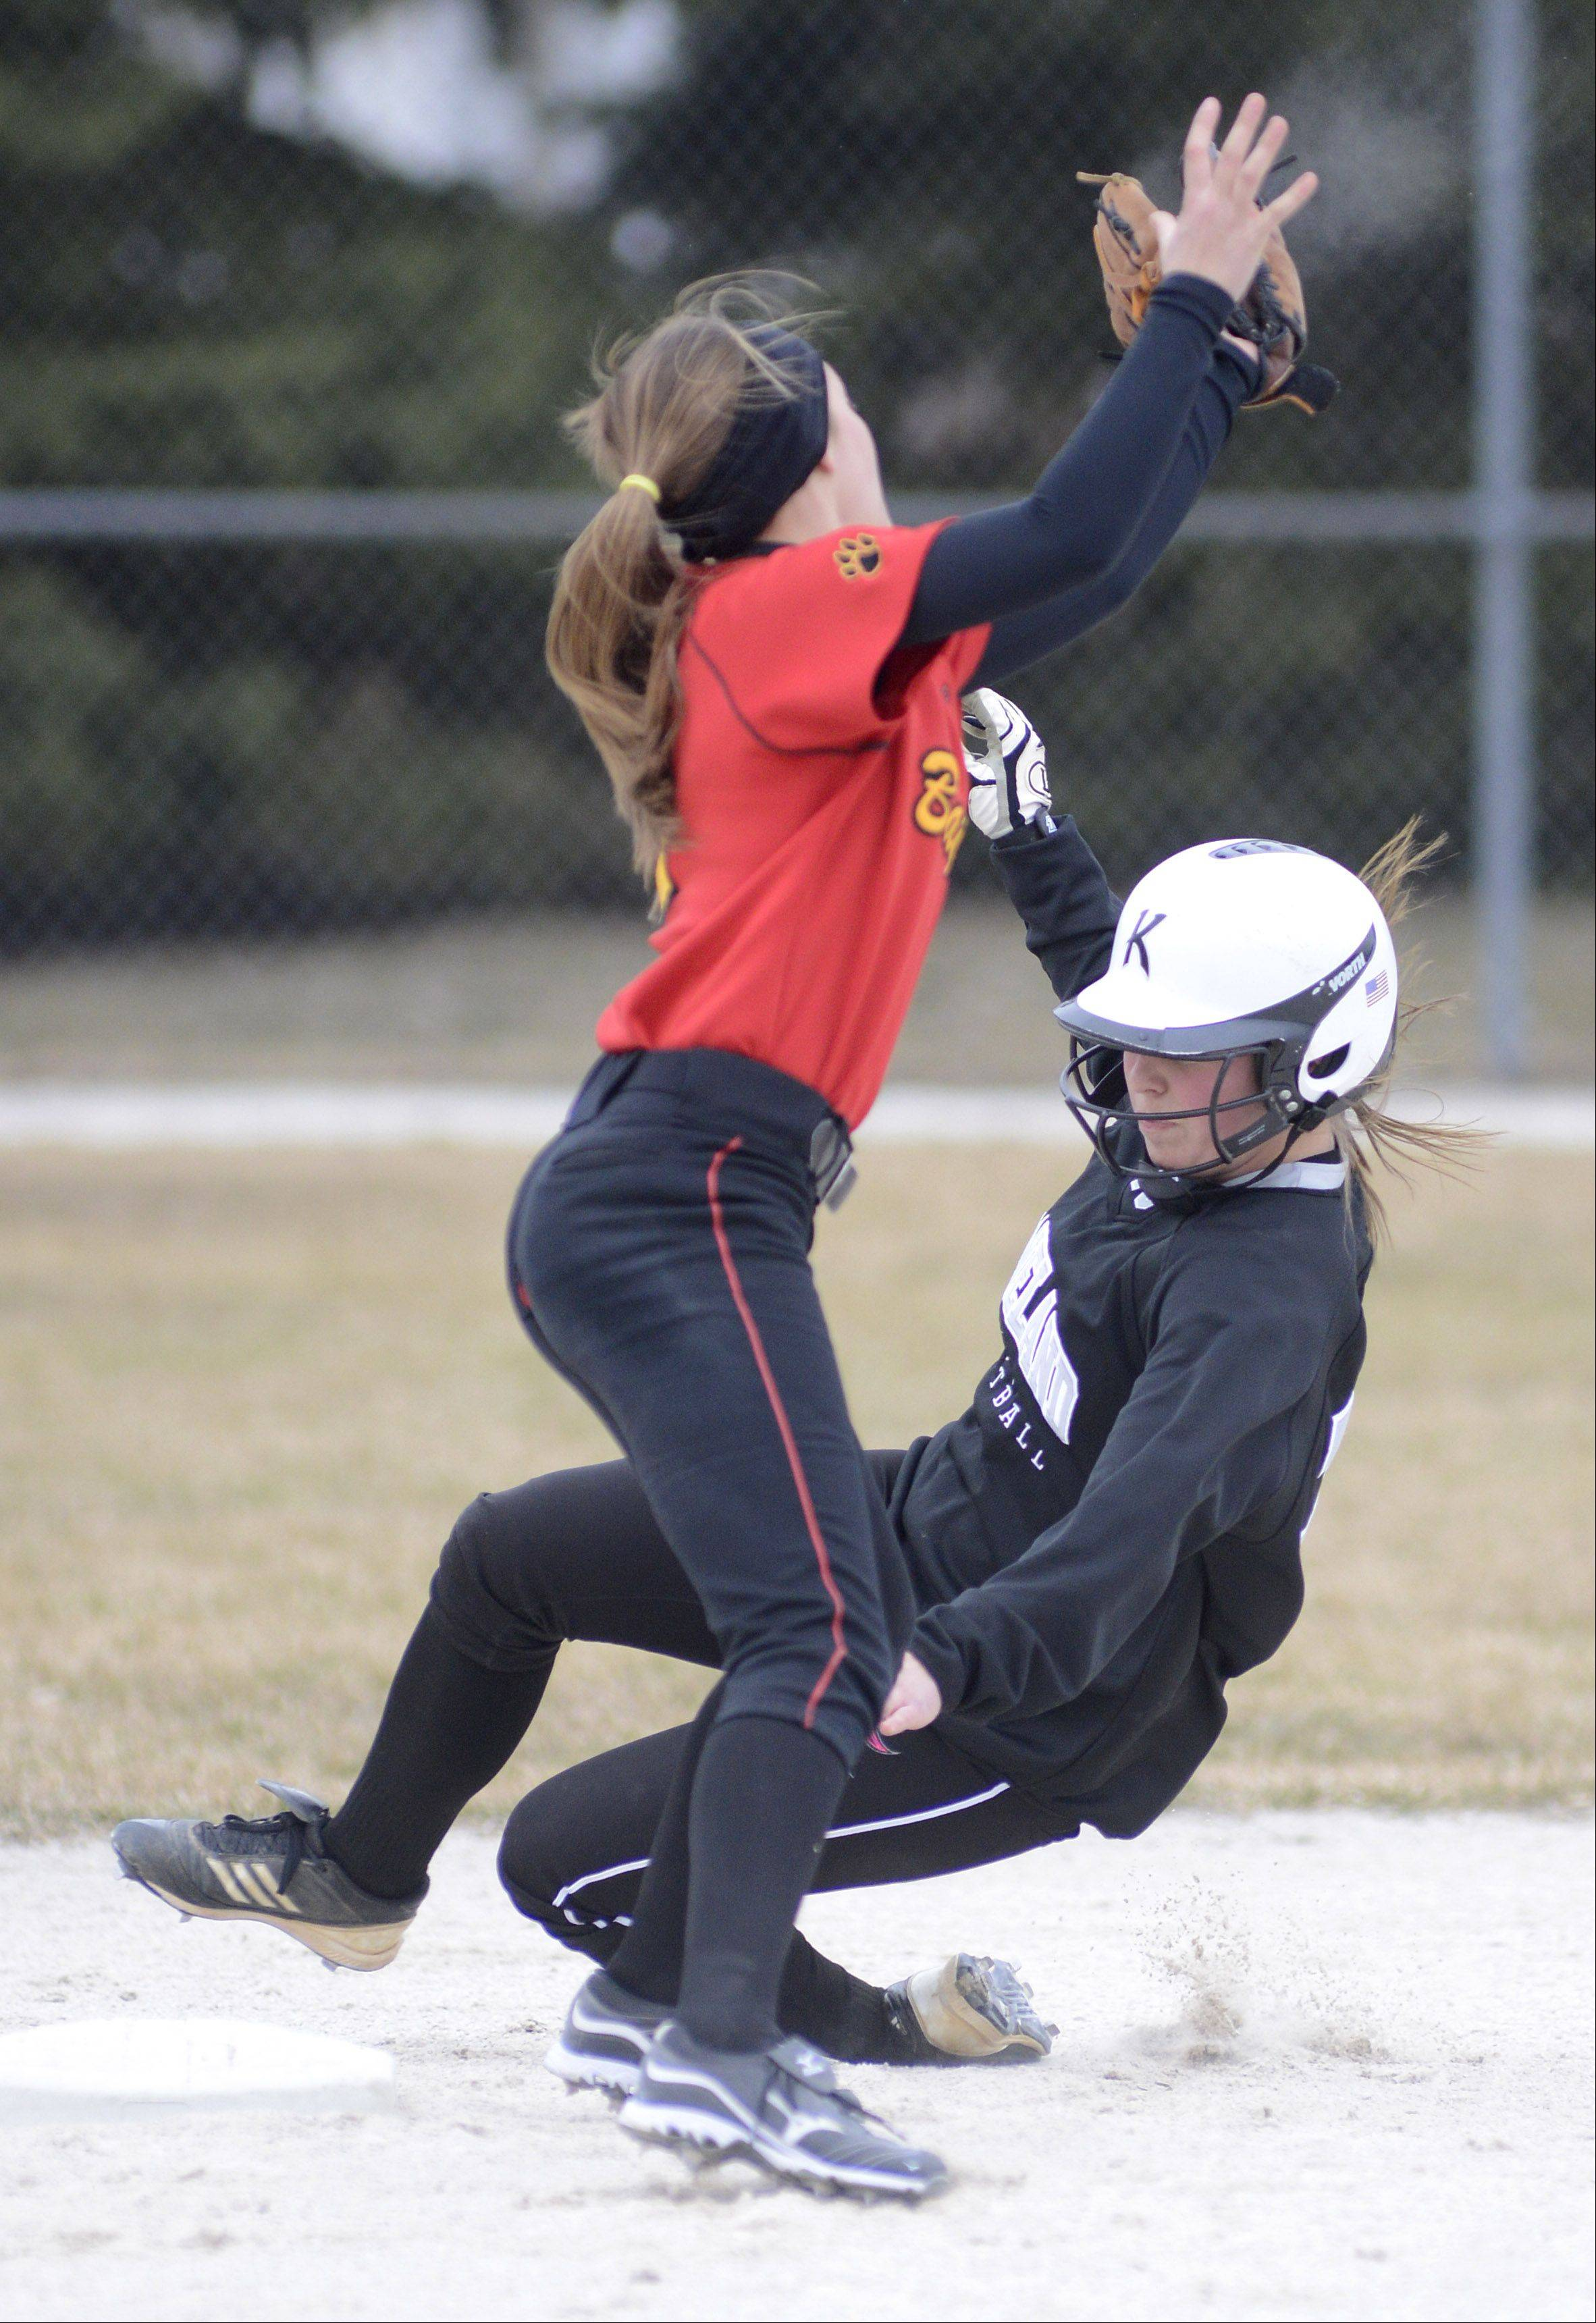 Kaneland's Lexi Roach is tagged out by Batavia's Alex Scaccia as she slides into second base in the first inning on Saturday, April 6.